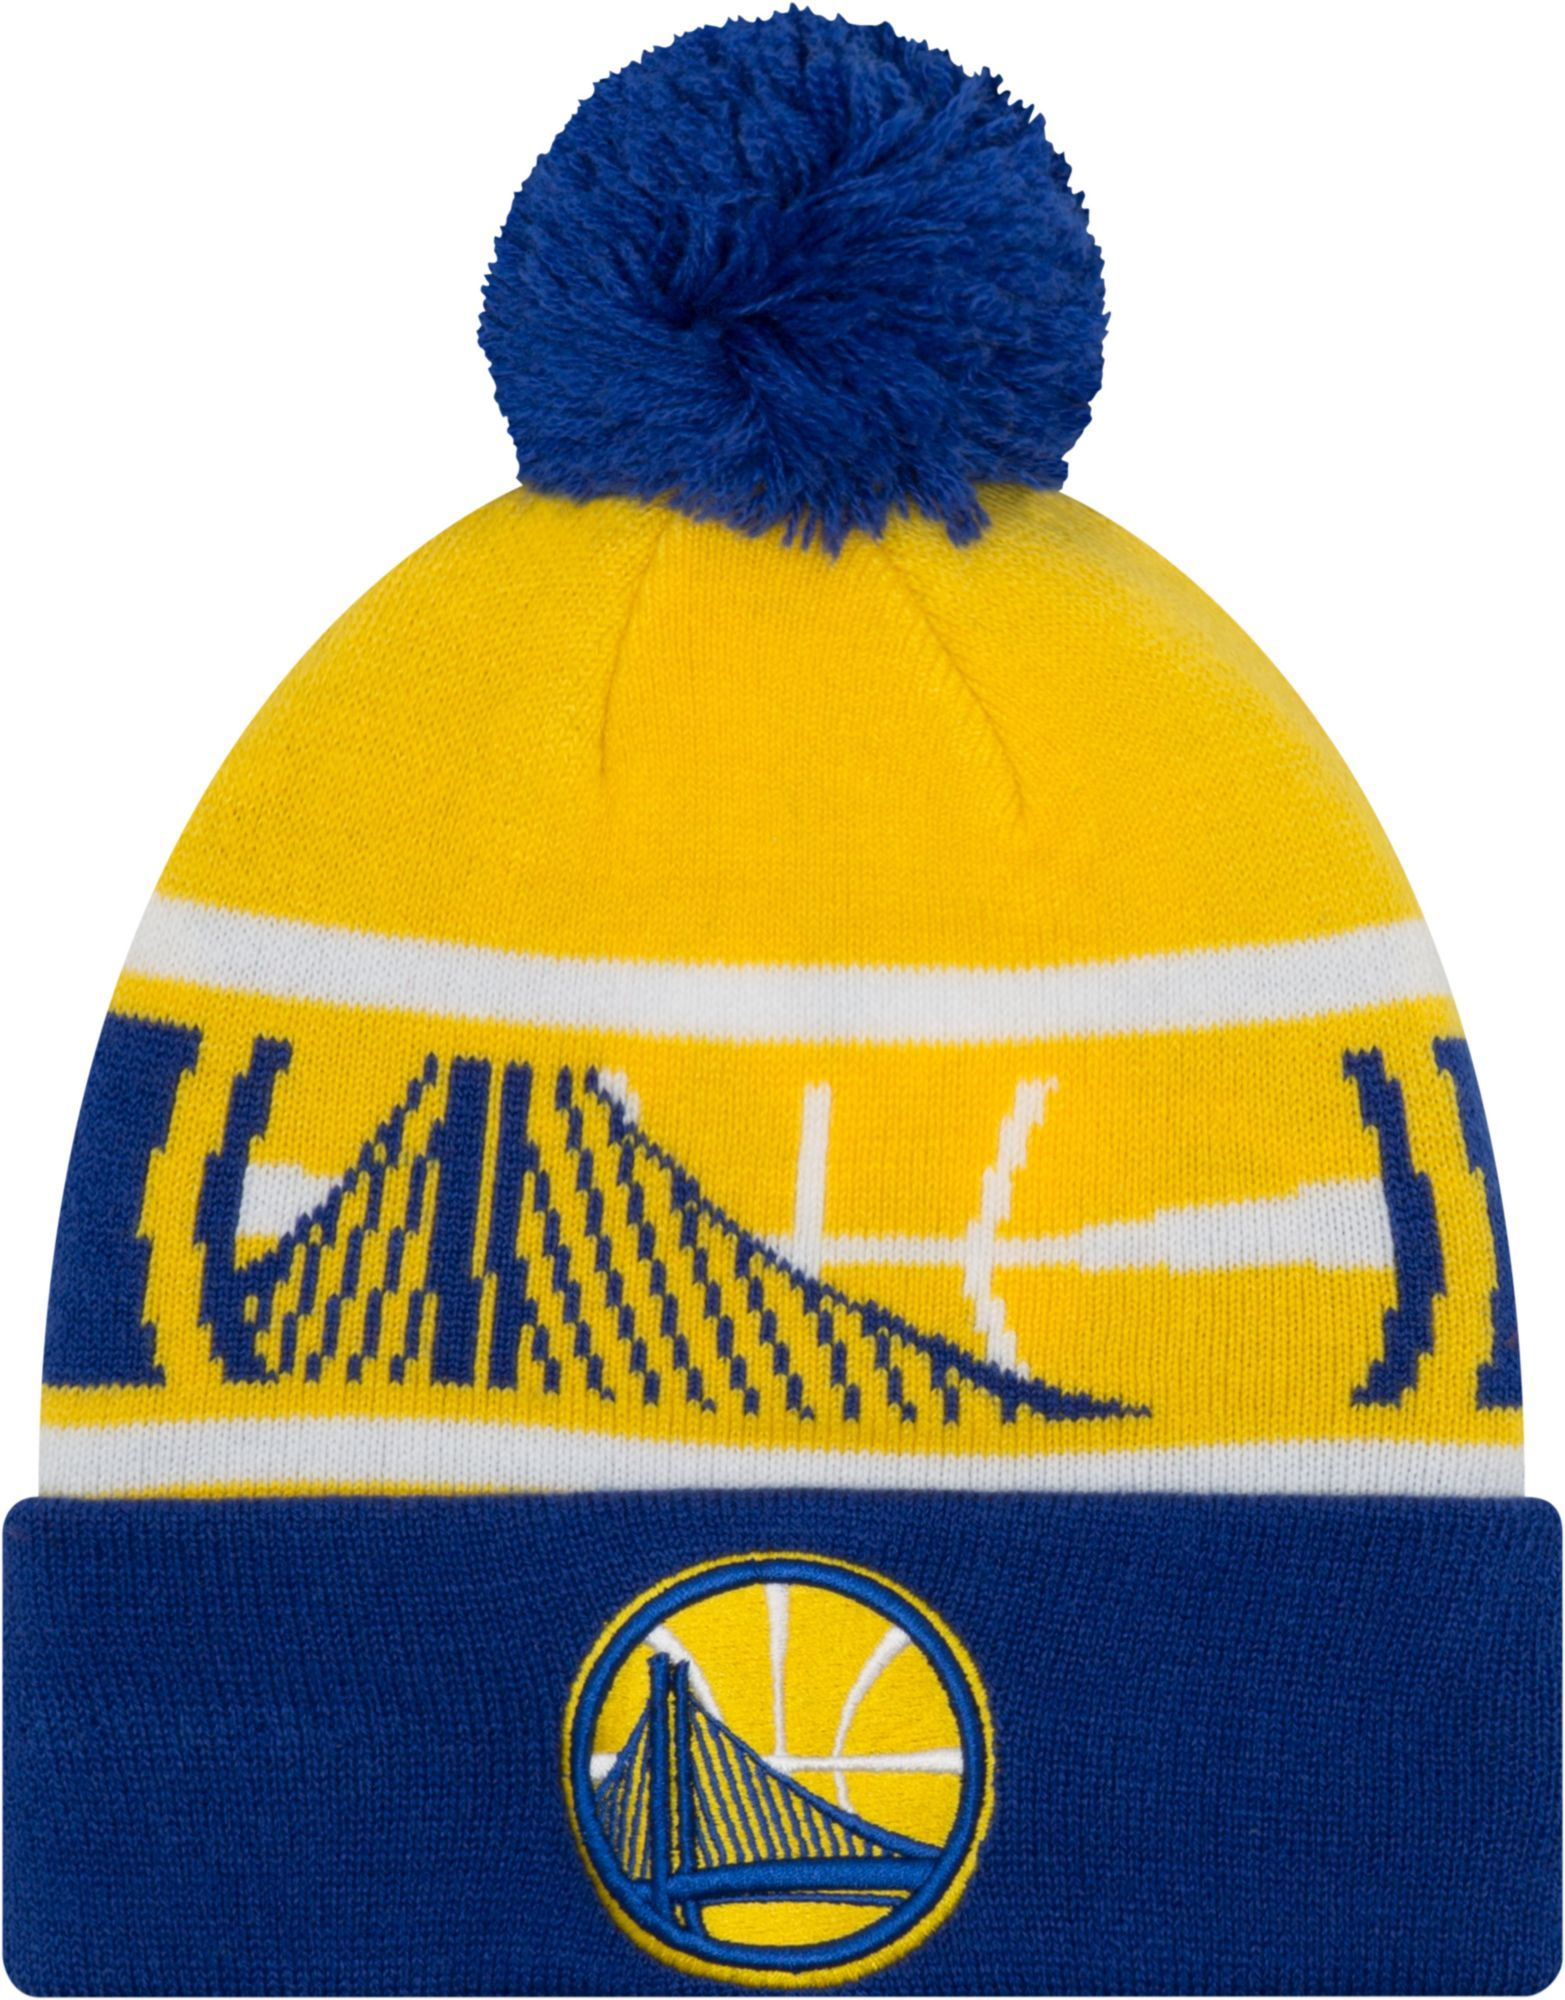 dac553f3 New Era Youth Golden State Warriors Callout Knit Hat in 2019 ...